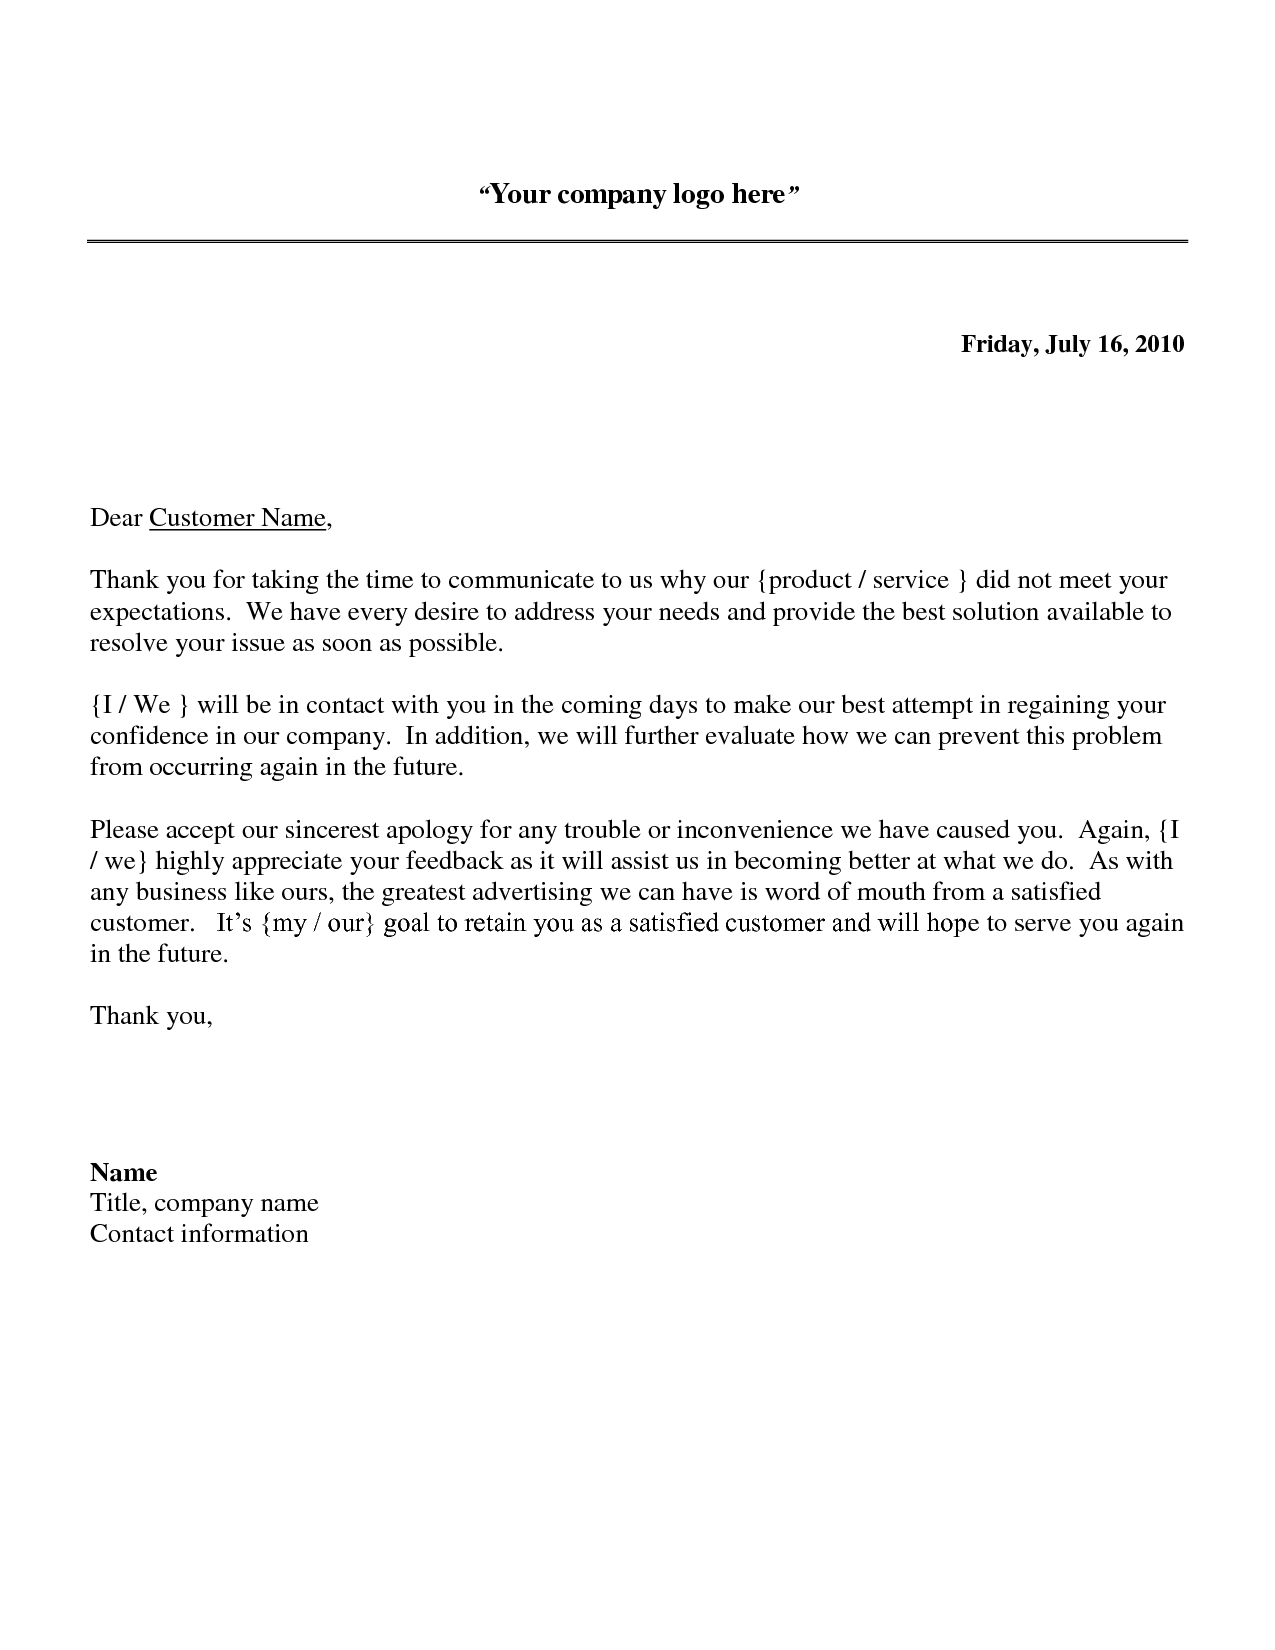 Business apology letter sample download as doc images frompoletter business apology letter sample download as doc images frompoletter of apology business letter sample spiritdancerdesigns